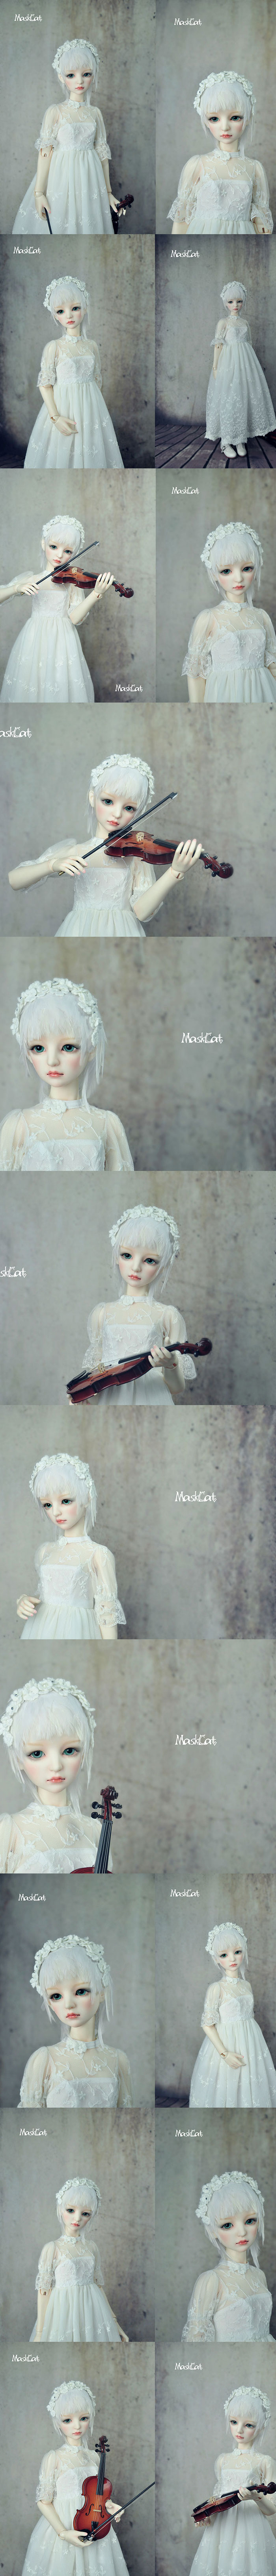 BJD Melodie 57cm Girl Ball-jointed Doll